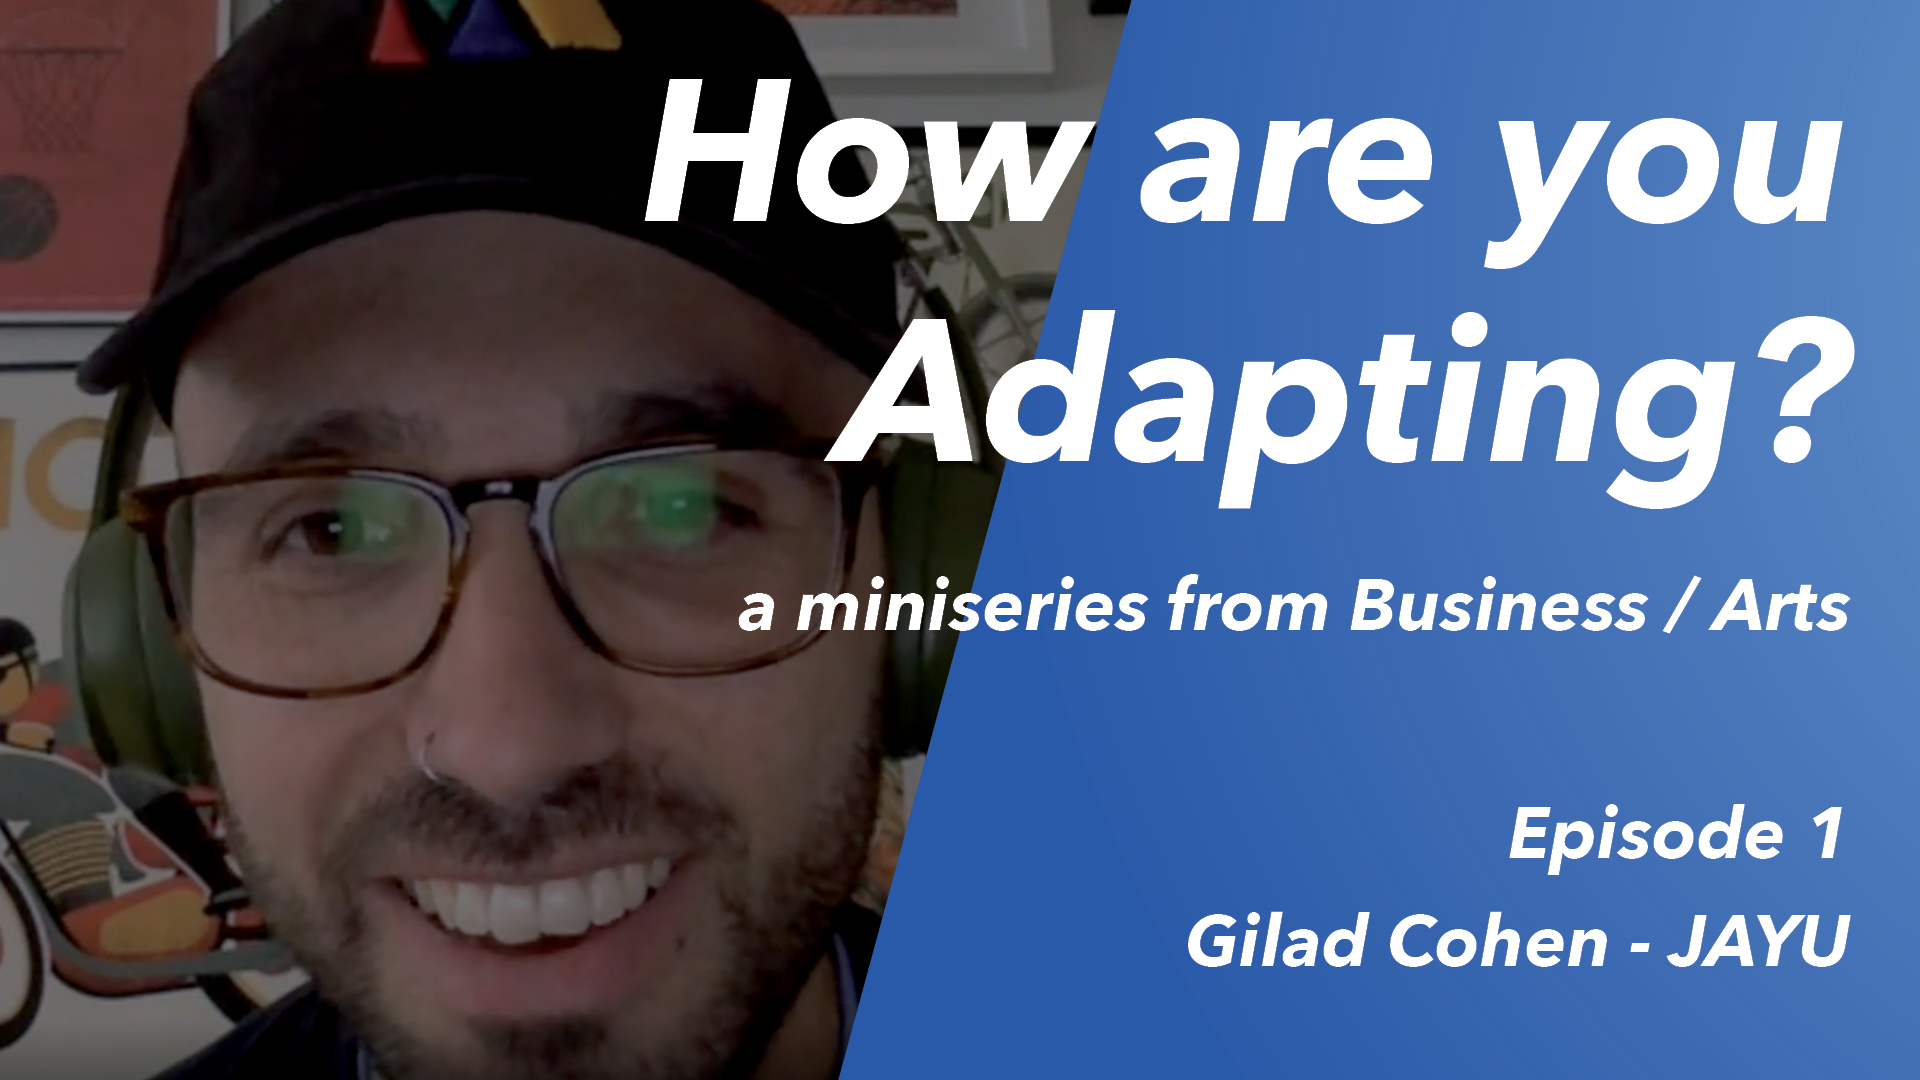 How are you Adapting? Ep1 – Gilad Cohen (JAYU)